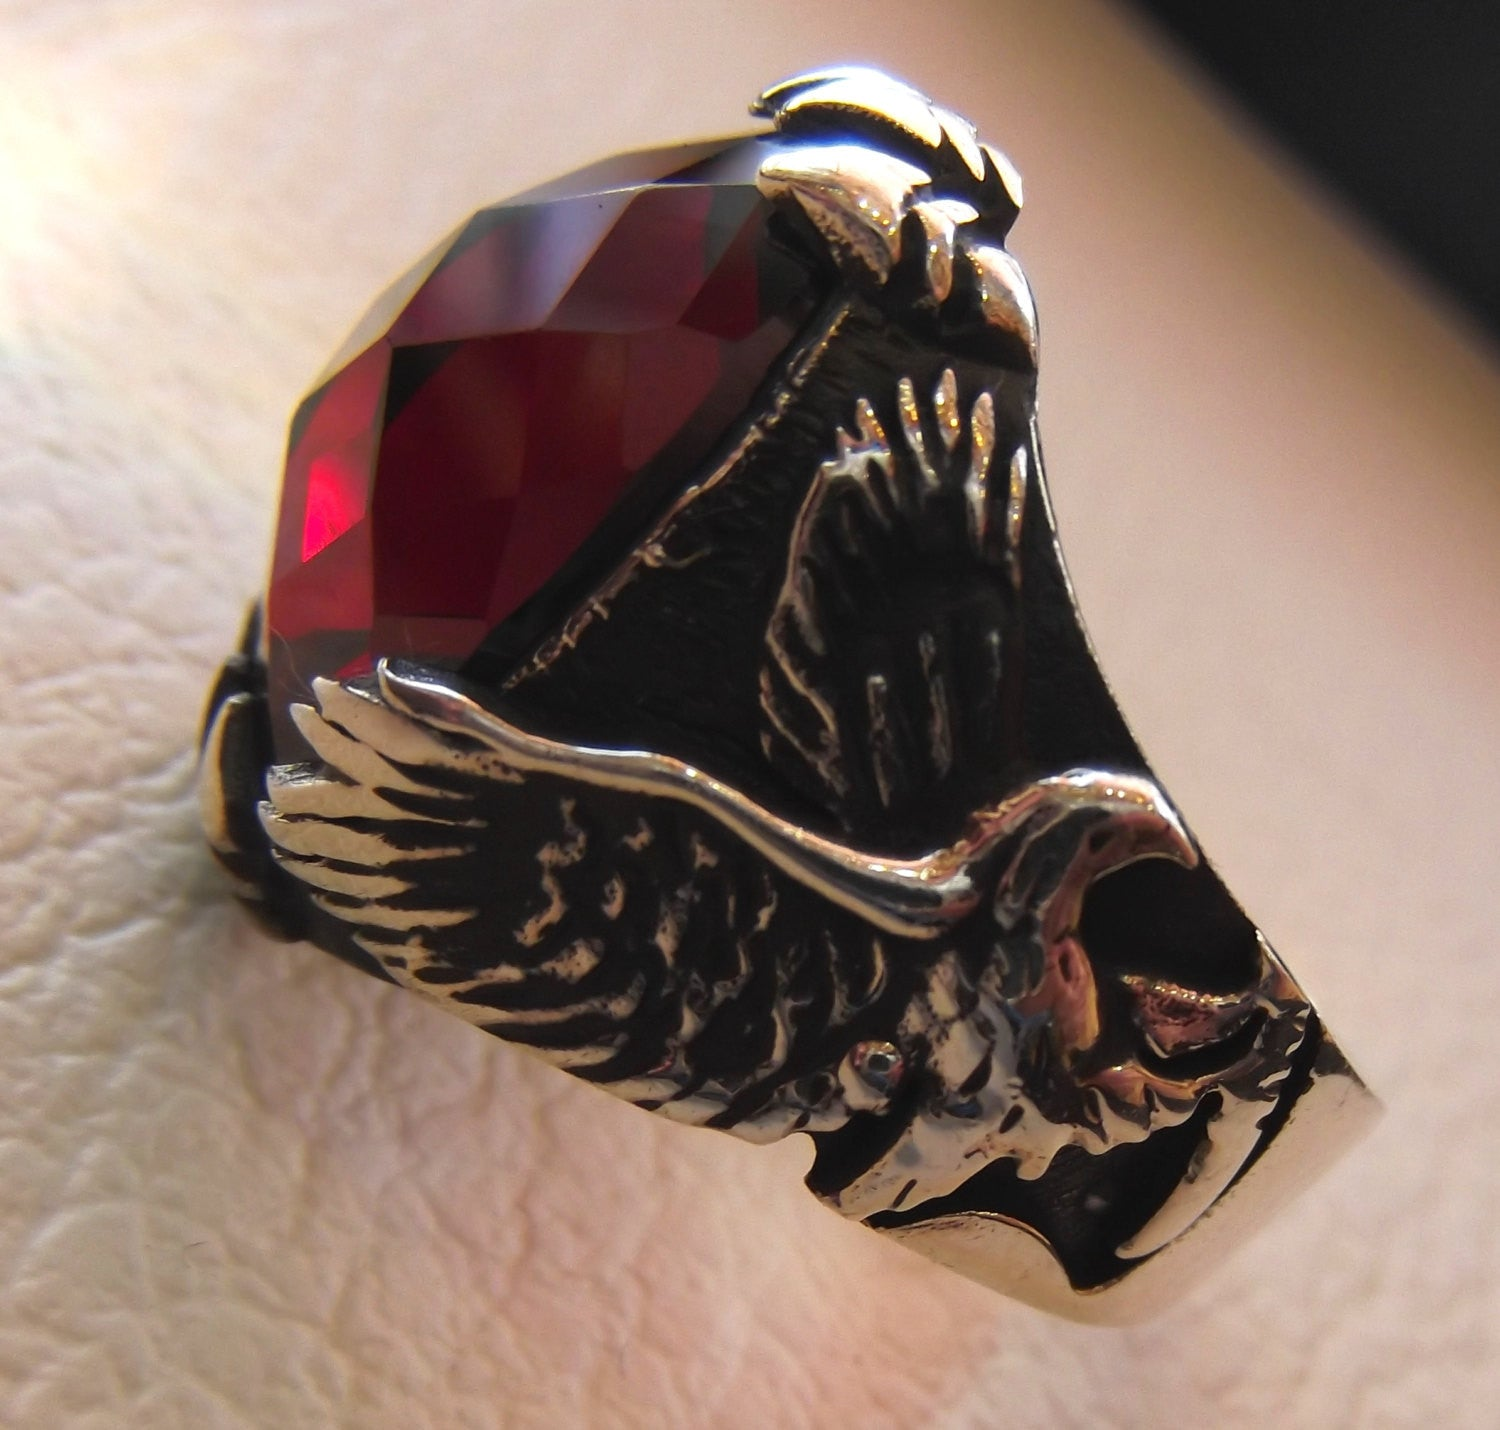 eagle man ring sterling silver 925 oval ruby imitation red faceted crystal stone all sizes jewelry gem